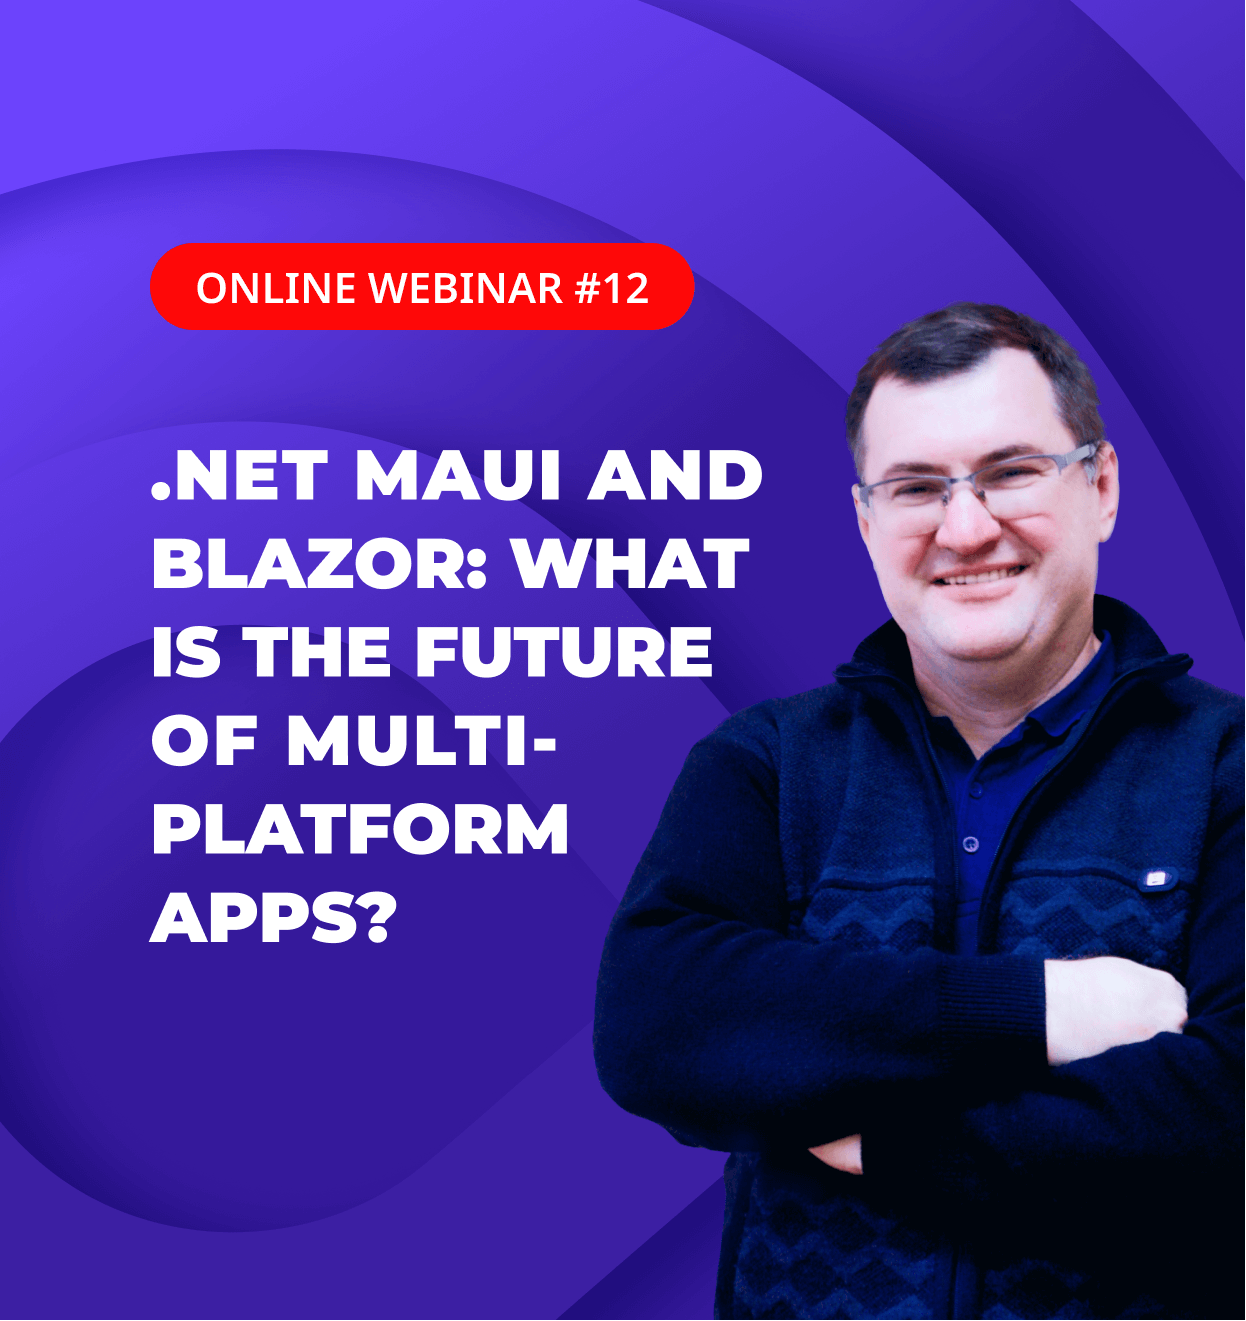 .NET MAUI and Blazor: What is the future of multi-platform apps?